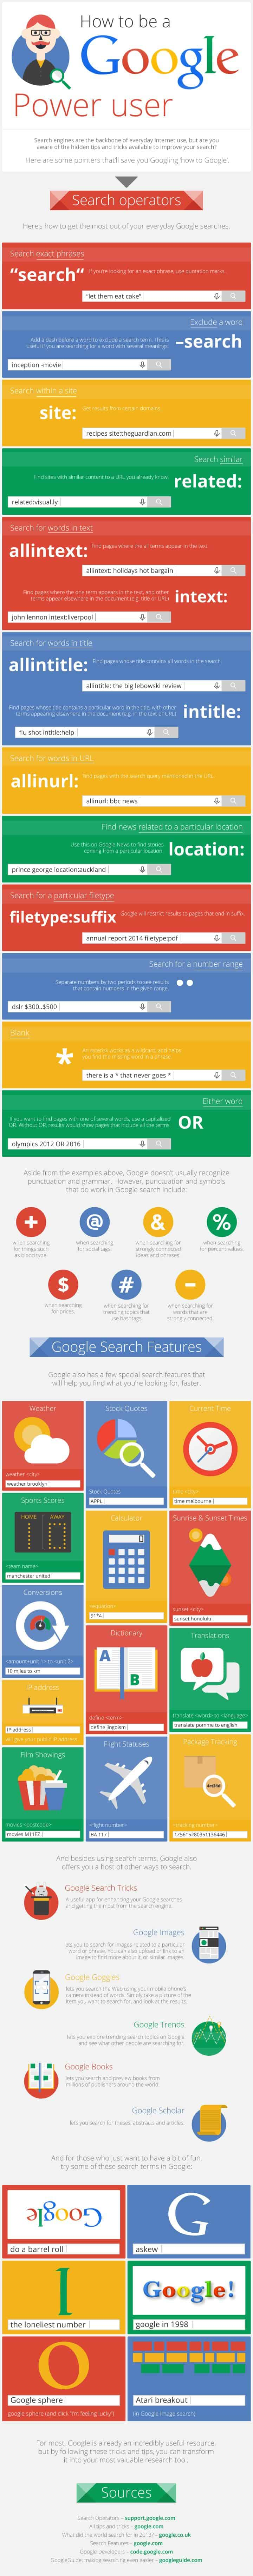 How To Become A Google Power User | Daily Infographic